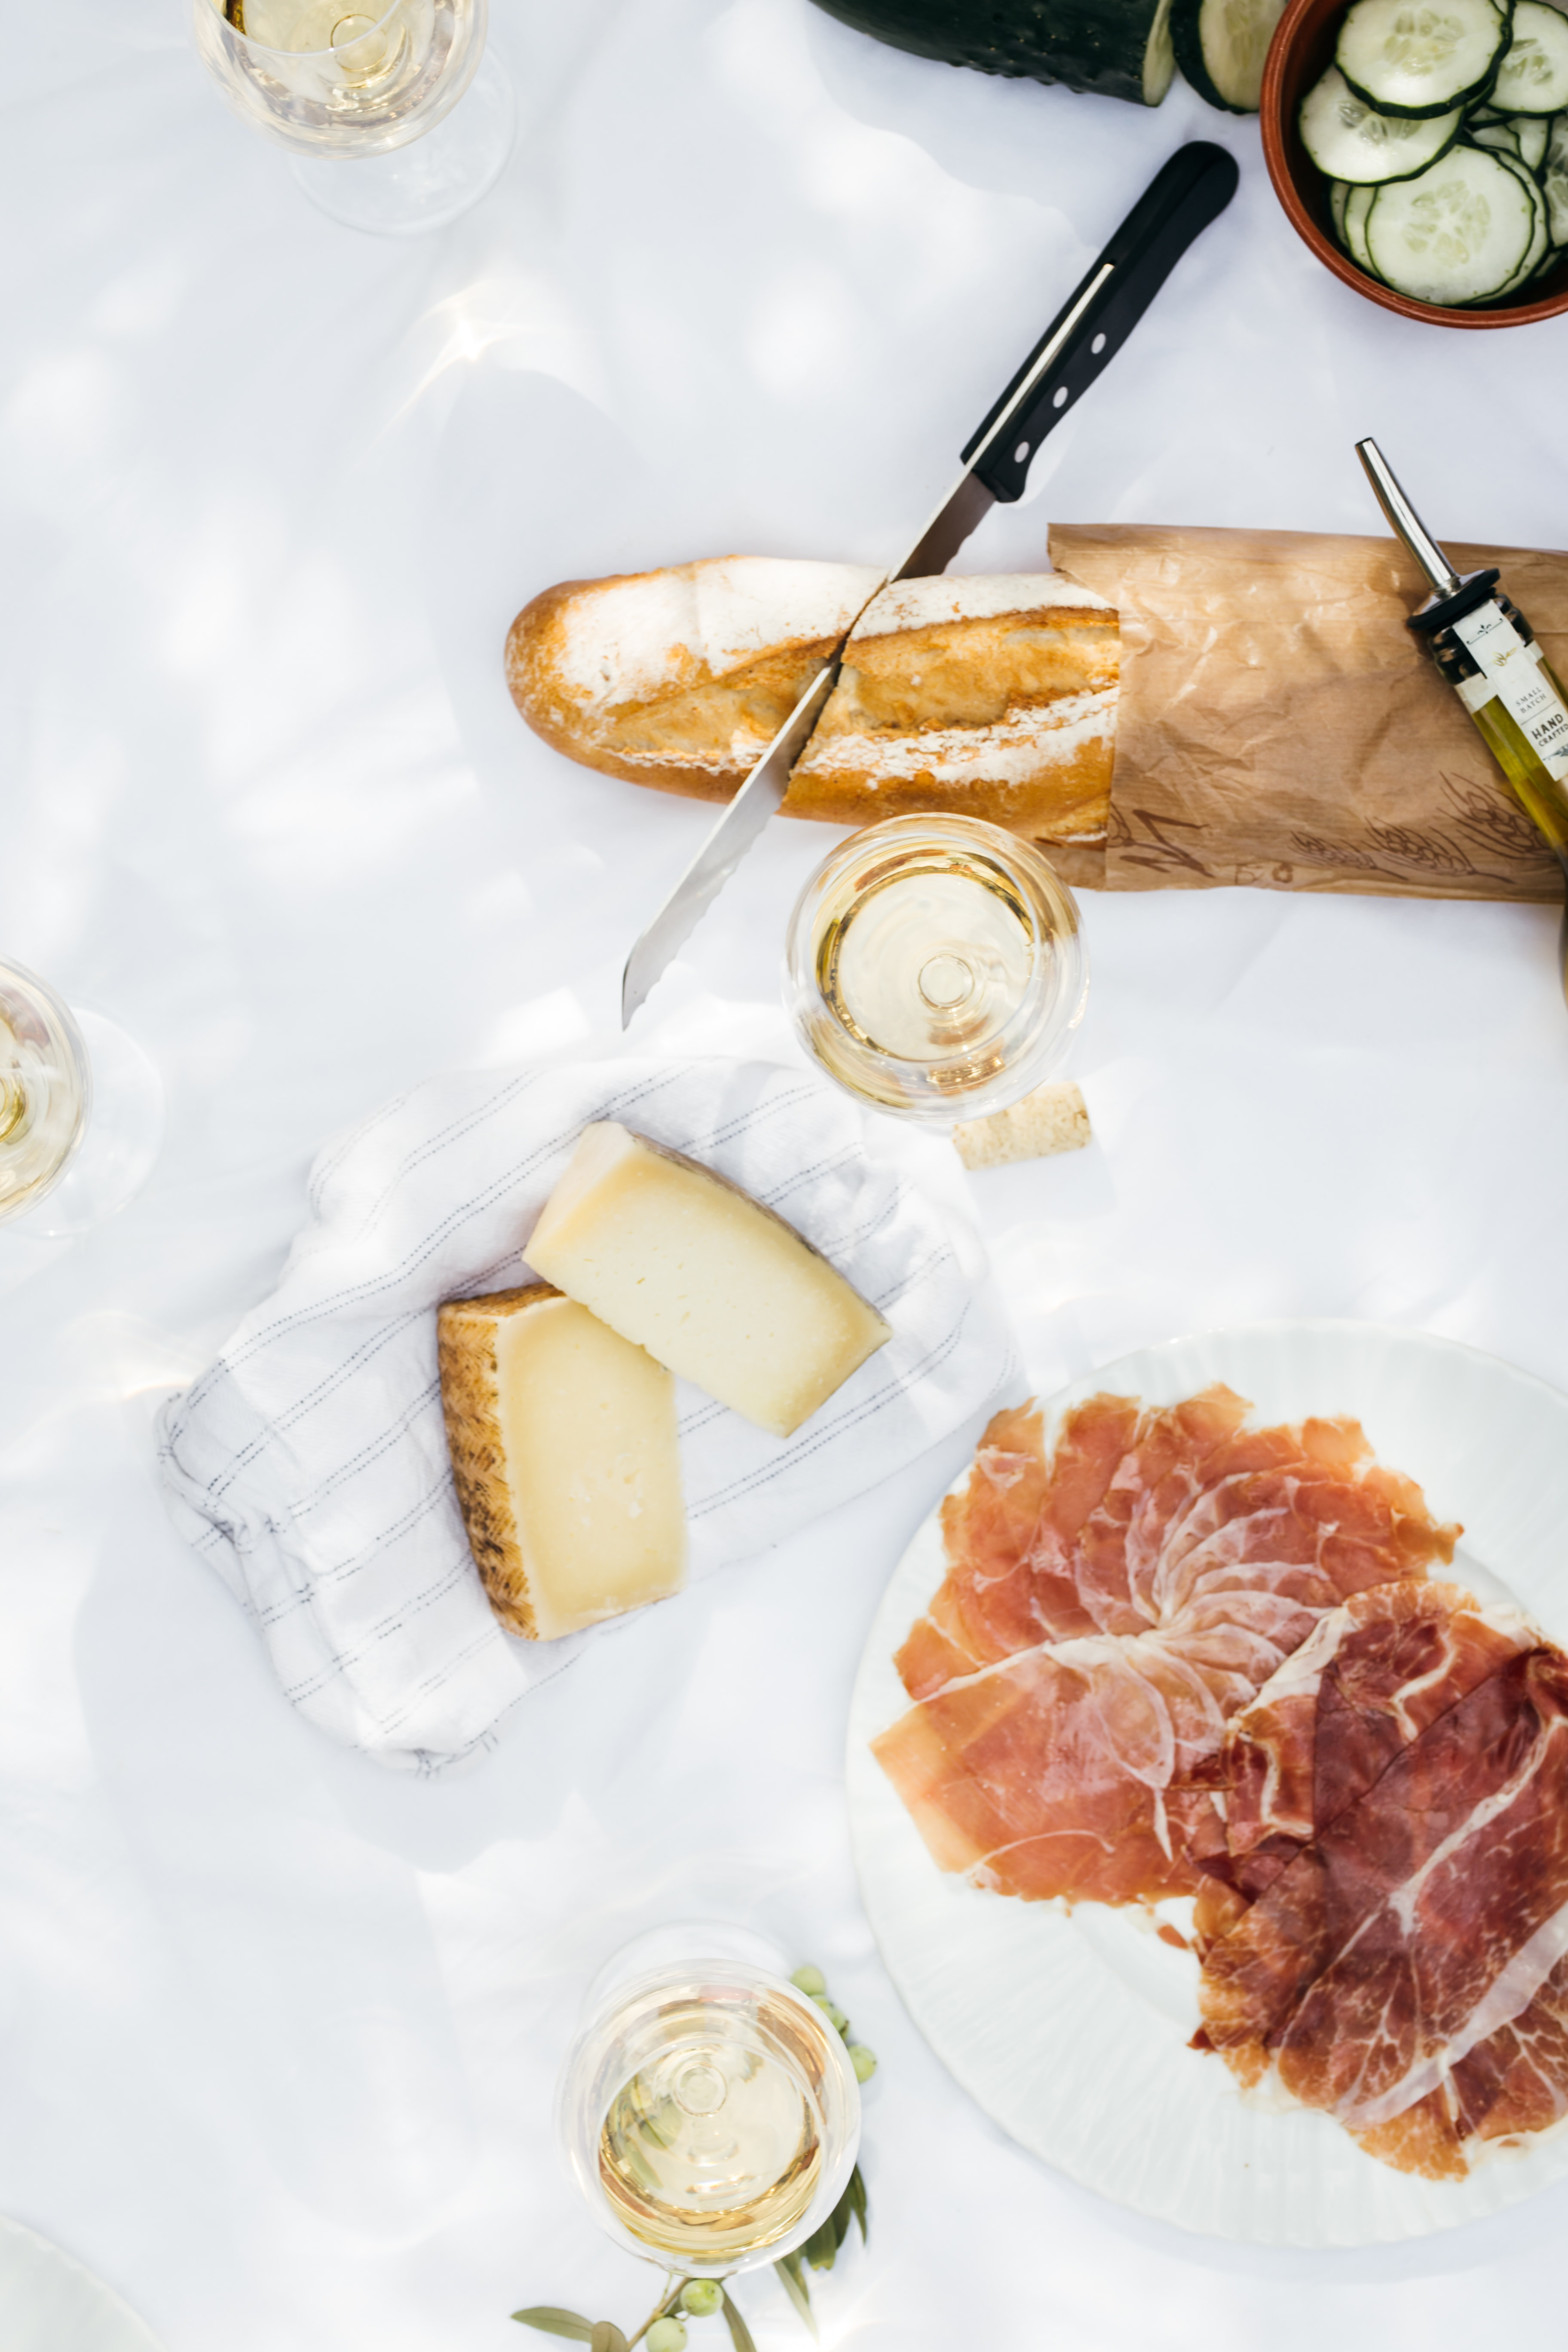 flat lay photography of cheese near jar filled with clear liquid next to bread